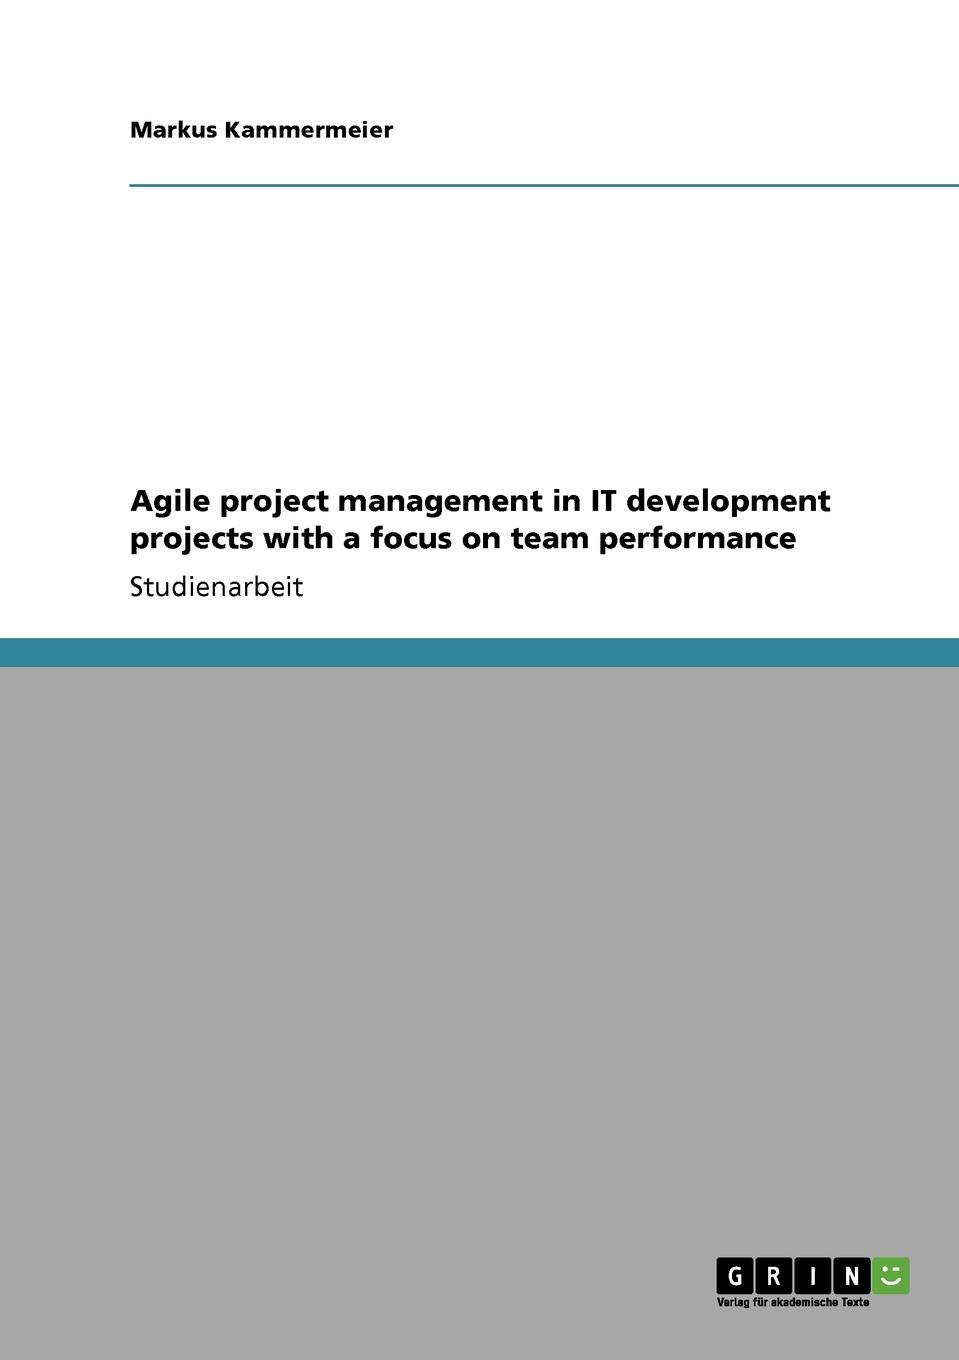 Markus Kammermeier Agile project management in IT development projects with a focus on team performance